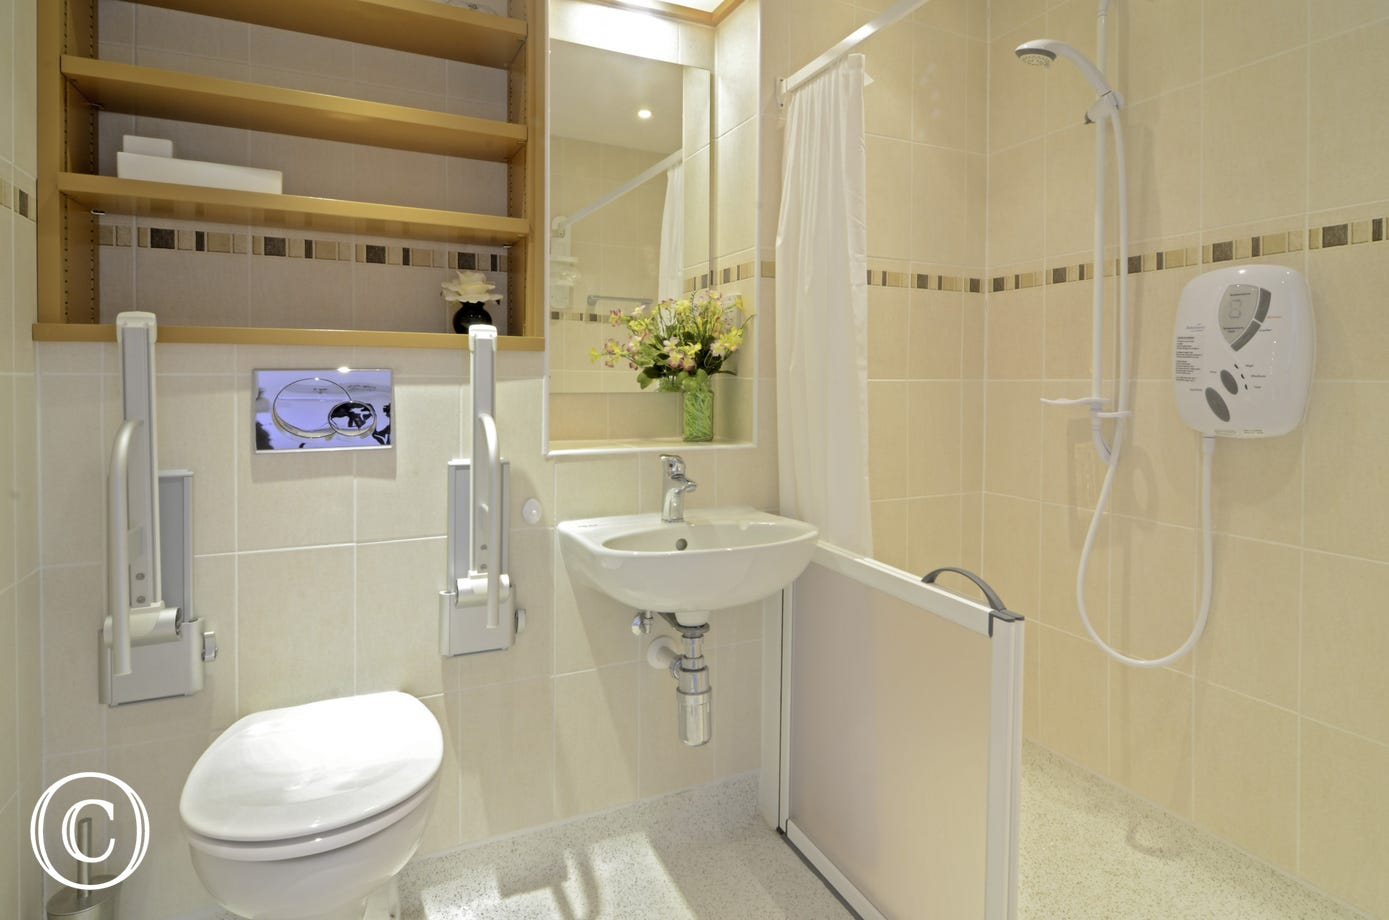 disabled friendly shower room with disabled shower cubicle and toilet